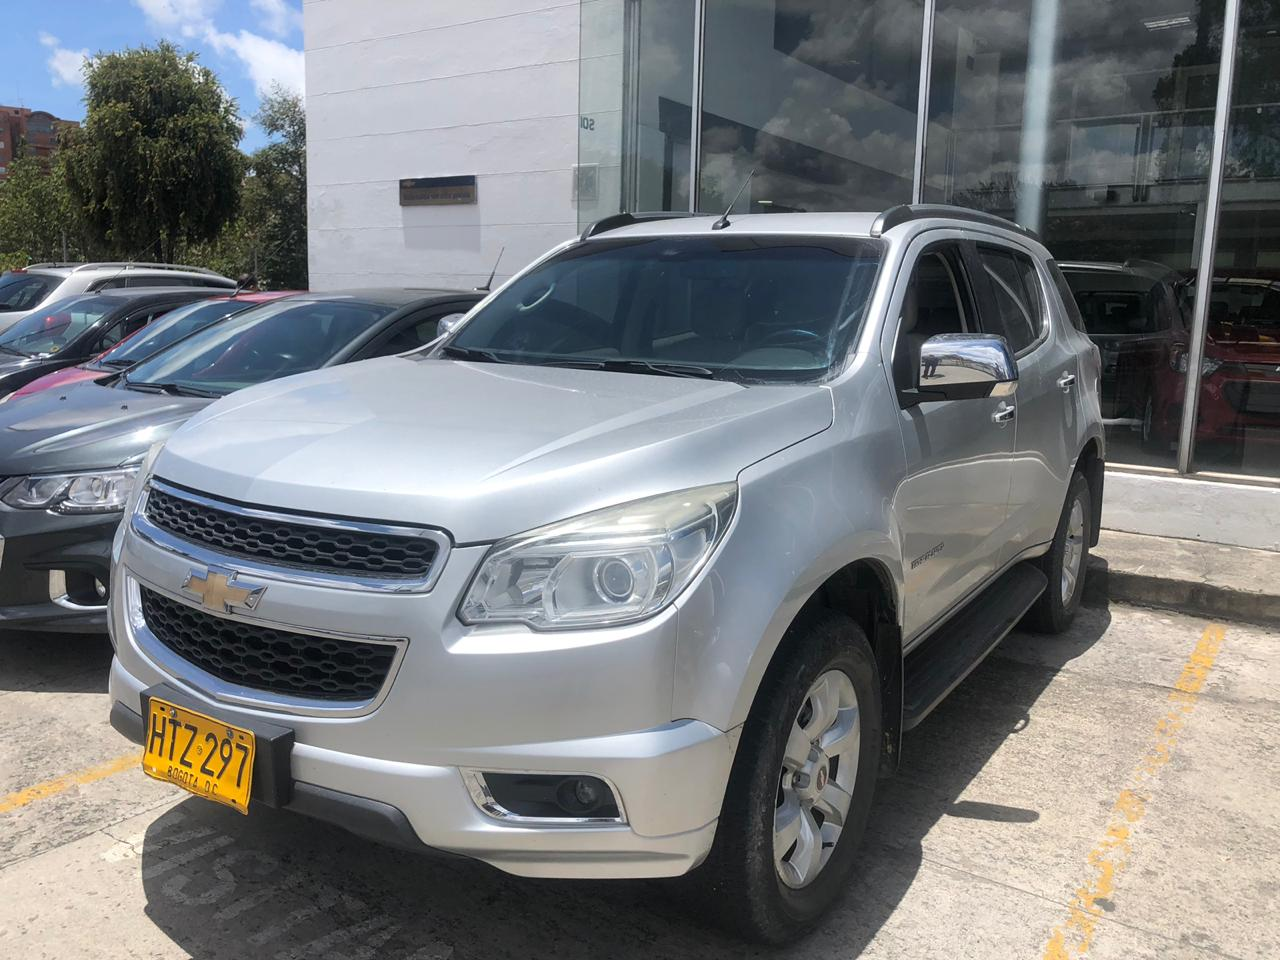 2013 CHEVROLET TRAILBLAZER E4 AT LTZ PASAJEROS 2.8L